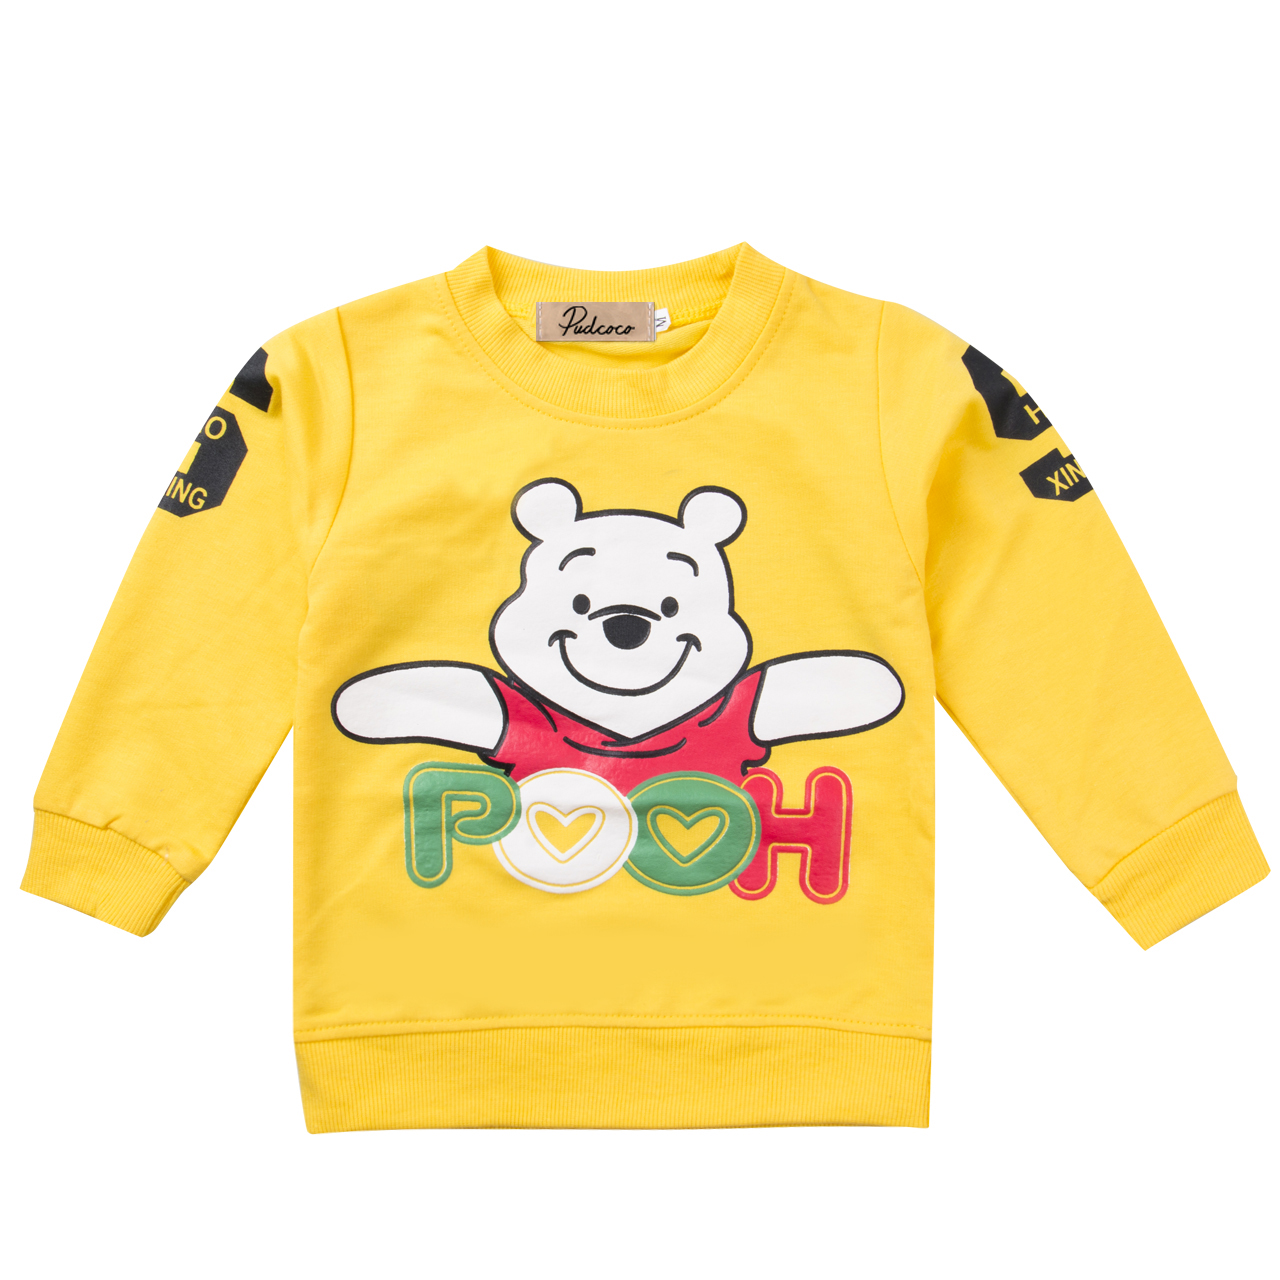 Cute 6 9 12 18 24 Months Long Sleeve O-Neck Autumn Clothing T-Shirt Baby Boy Girl Unisex Character Clothes